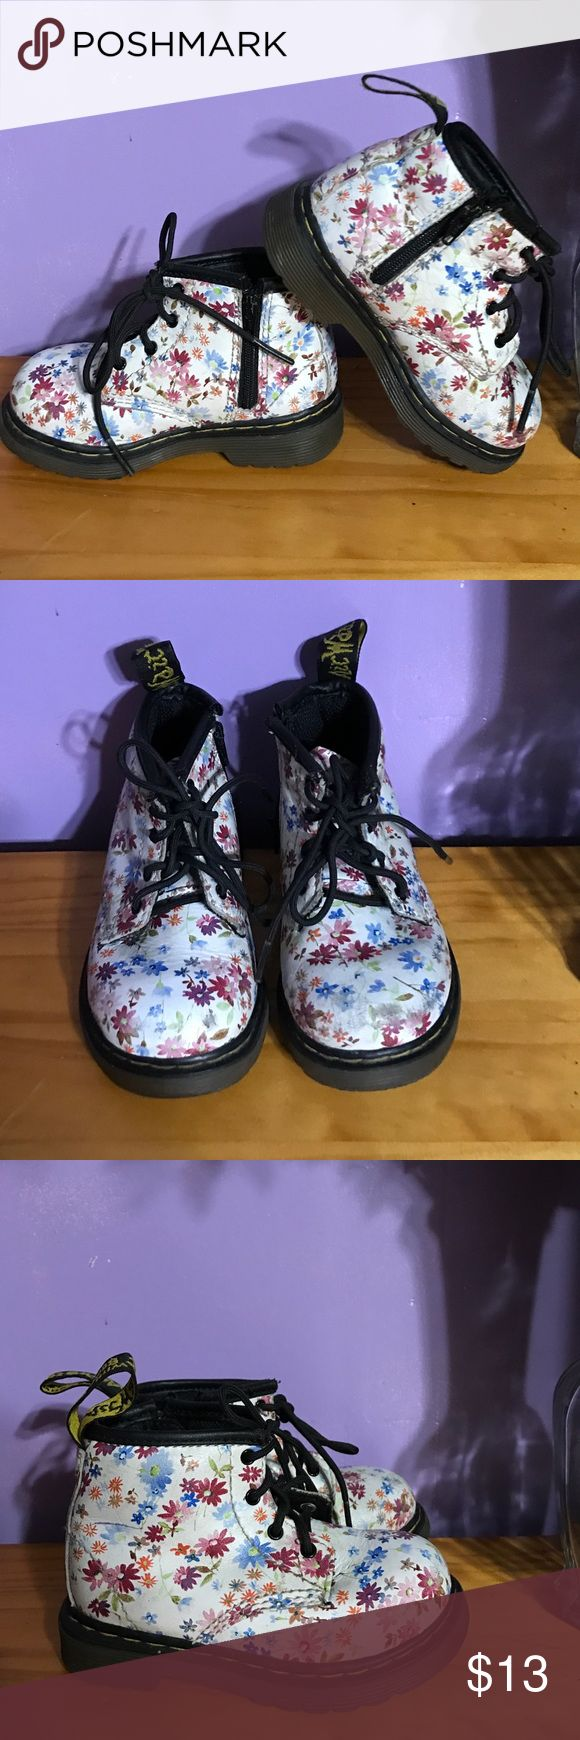 Dr martens brooklee b toddler boots Original pair of dr marten boots size US 6.  They are used please look at picture to see scratches it has in the front . Dr. Martens Shoes Boots